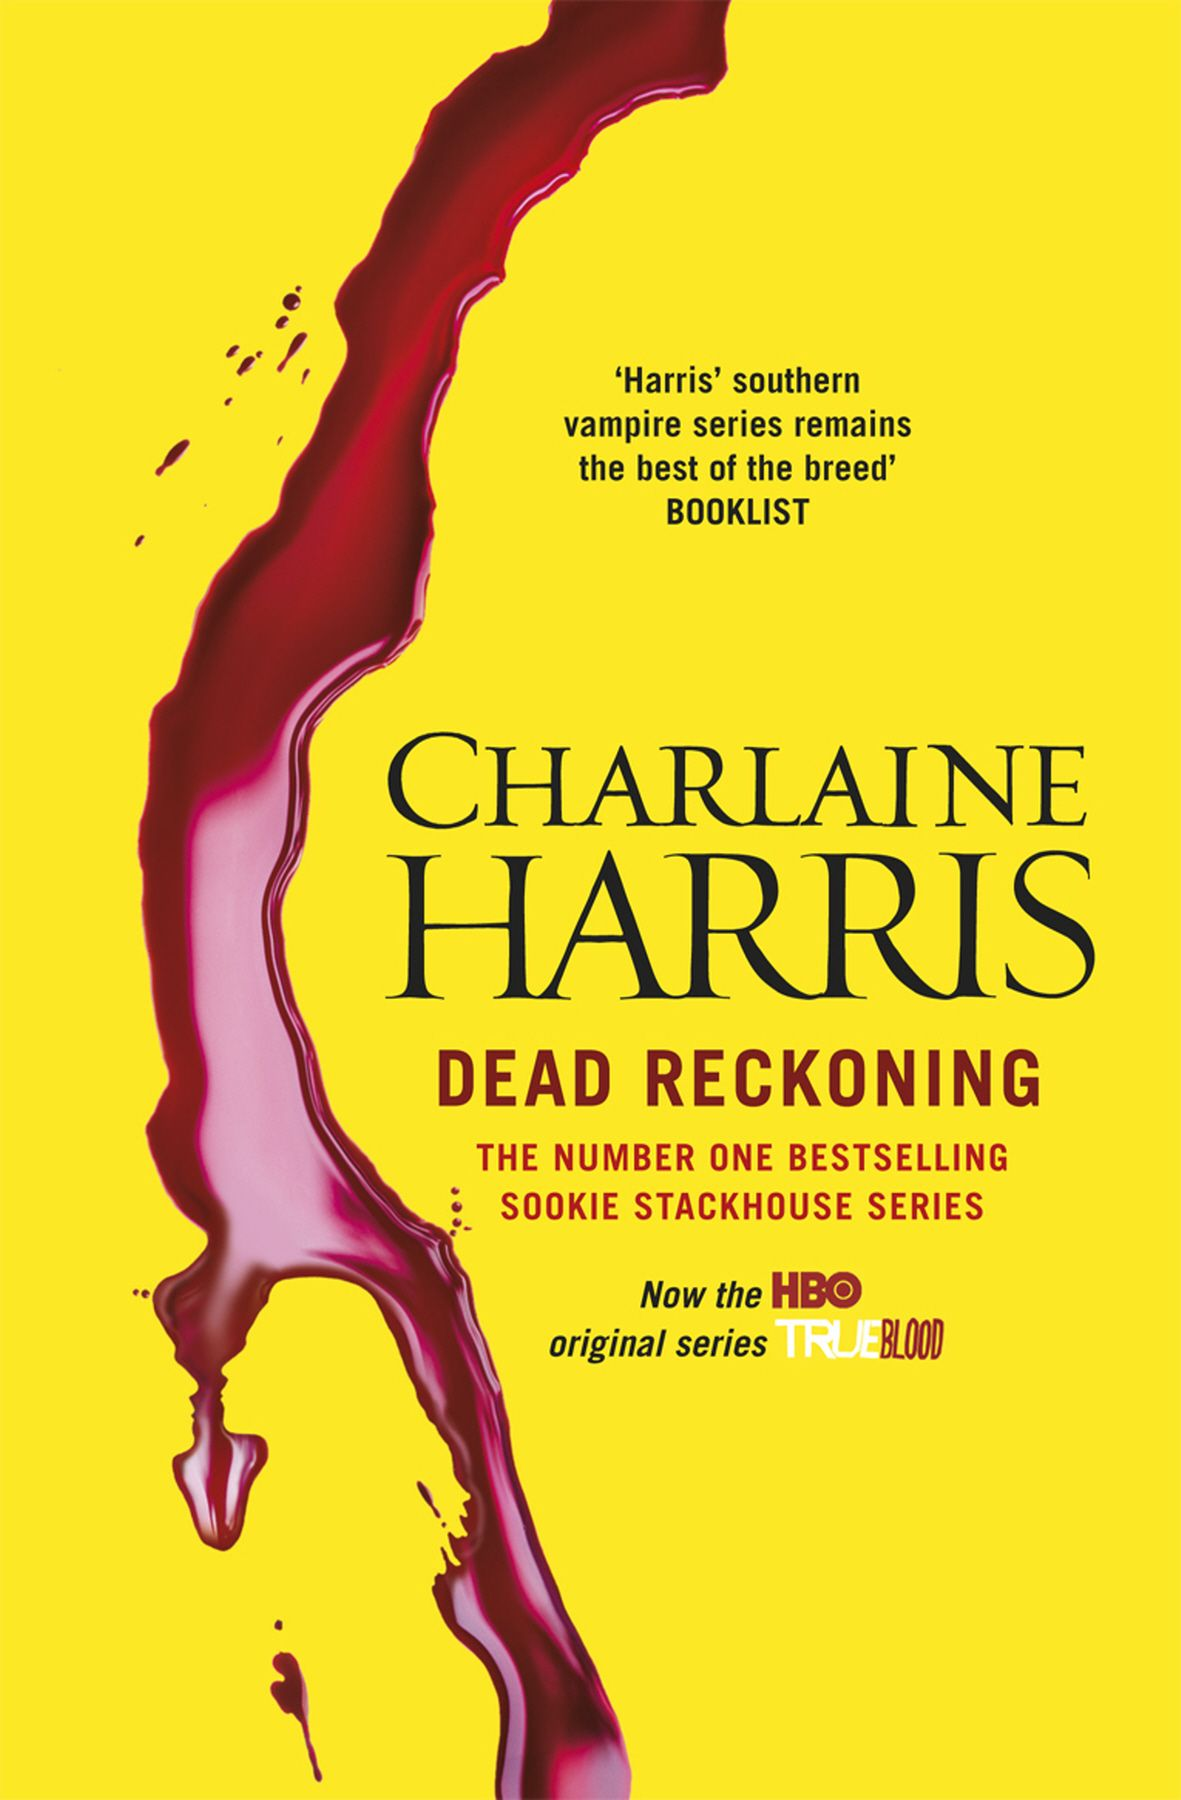 Dead Reckoning (sookie Stackhouse #11) There's A Reckoning On The Way